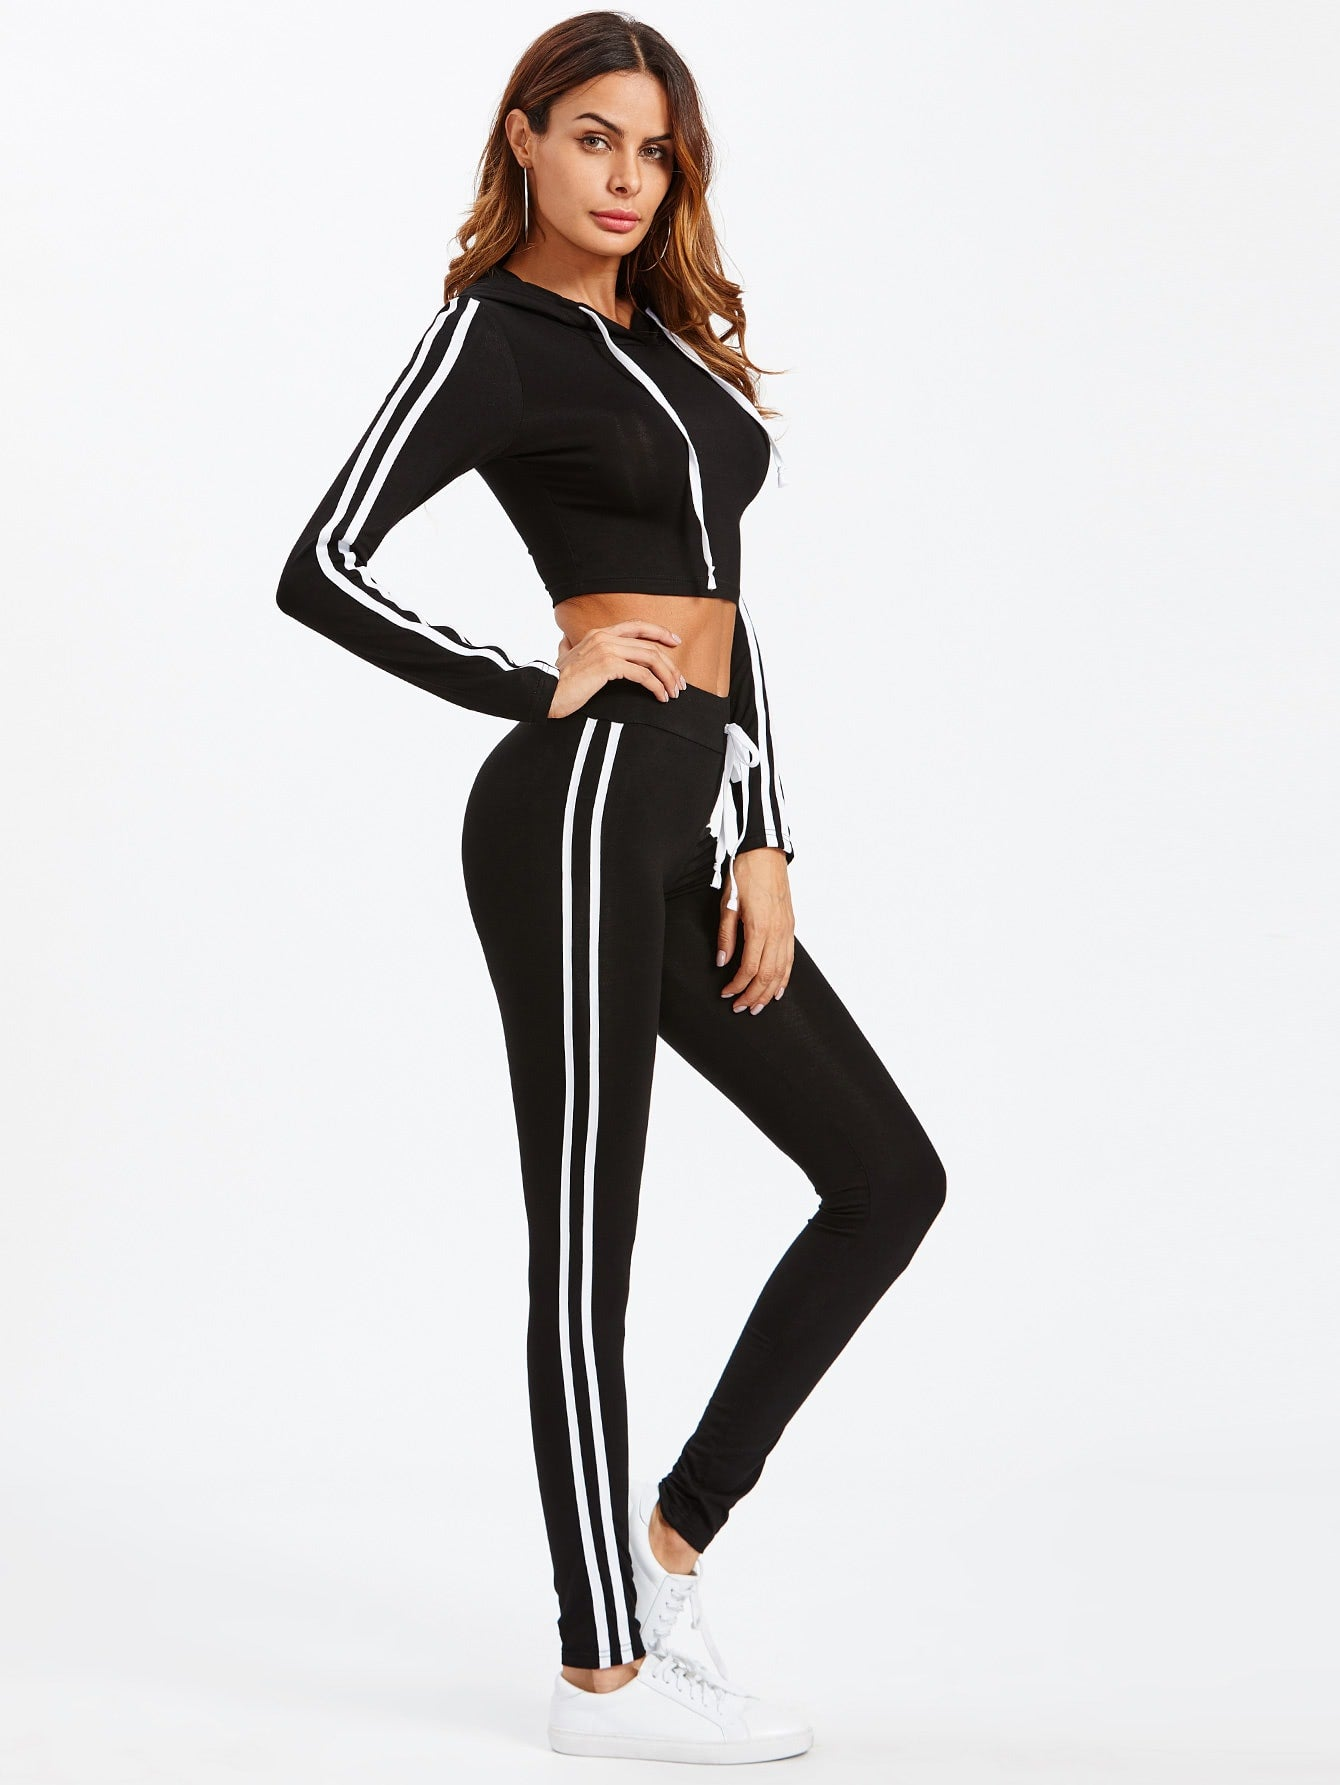 Black & White Cropped Hoodie & Pant Set | Two Piece | SHEIN | Joan & Vern's Apparel